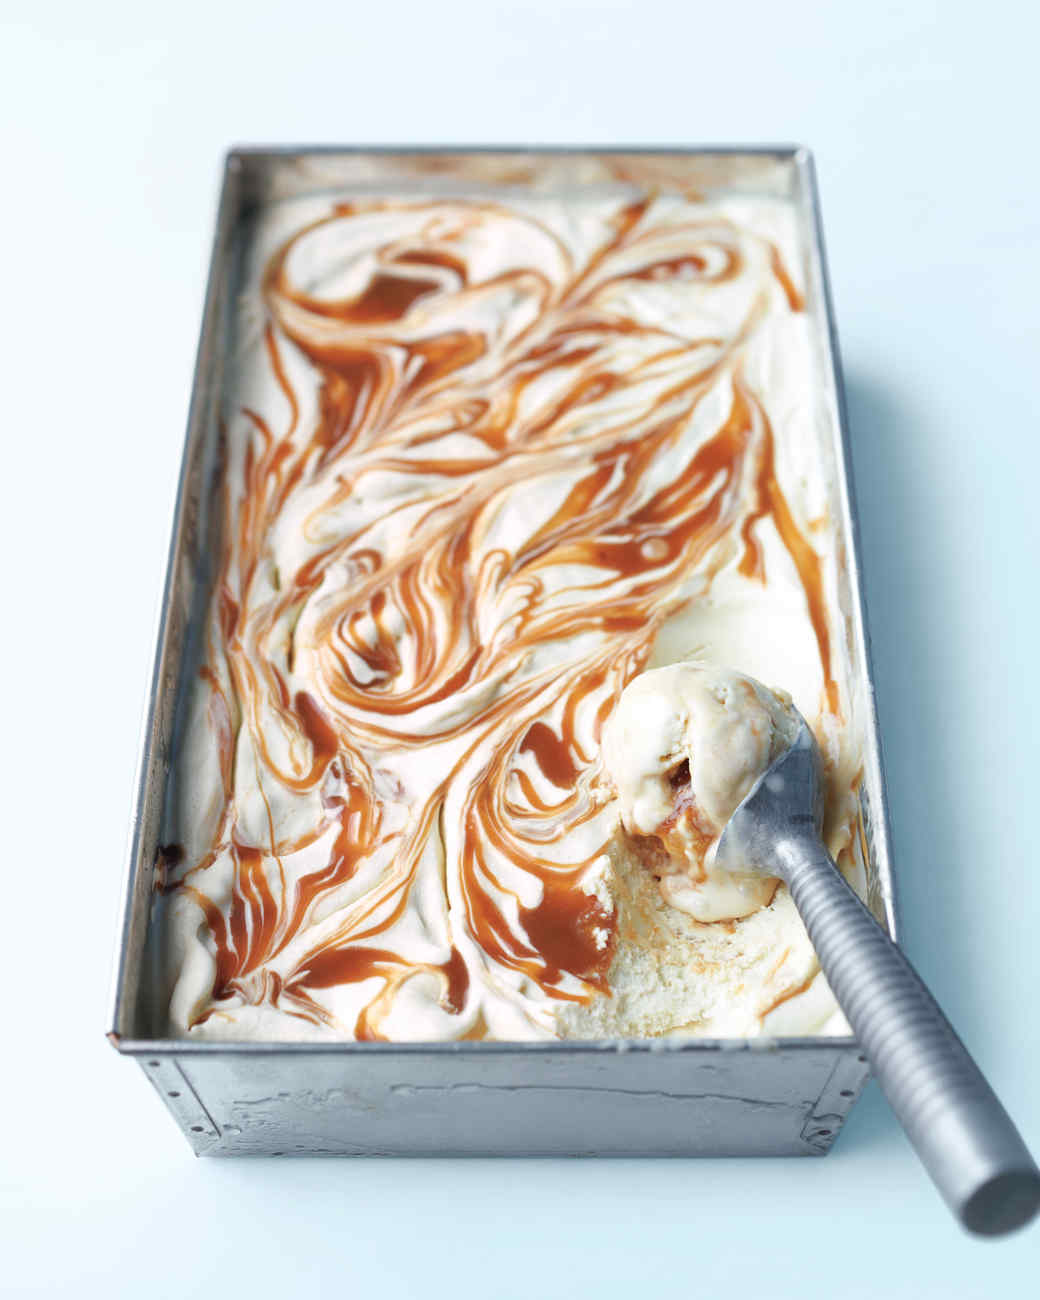 ice-cream-banana-caramel-mld108857.jpg